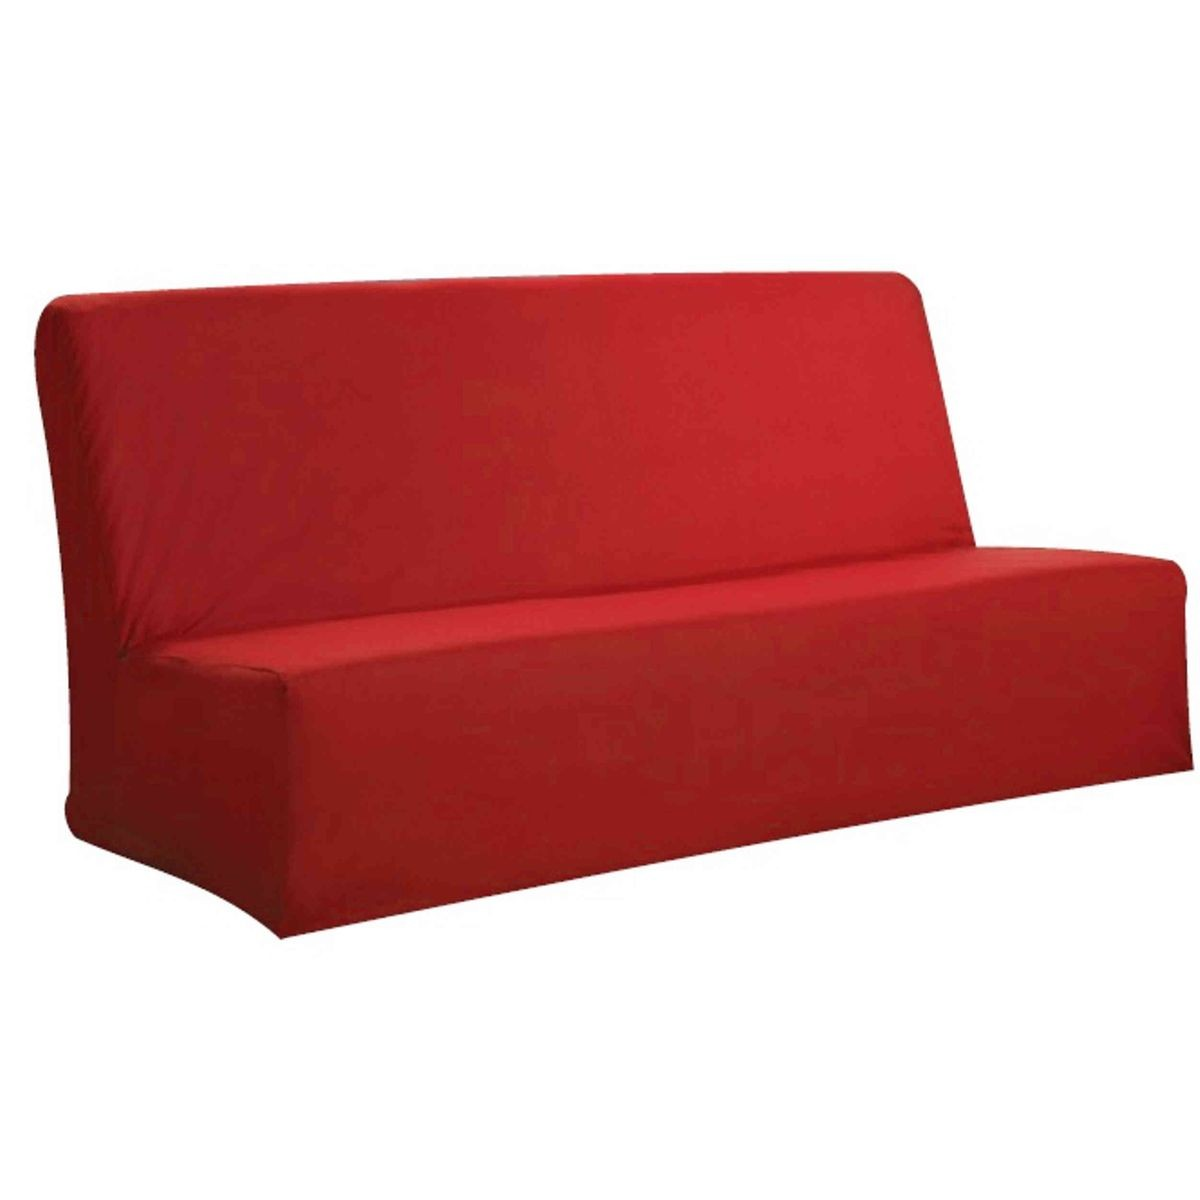 Housse Clic Clac Rouge Taille 140x190 Cm Products